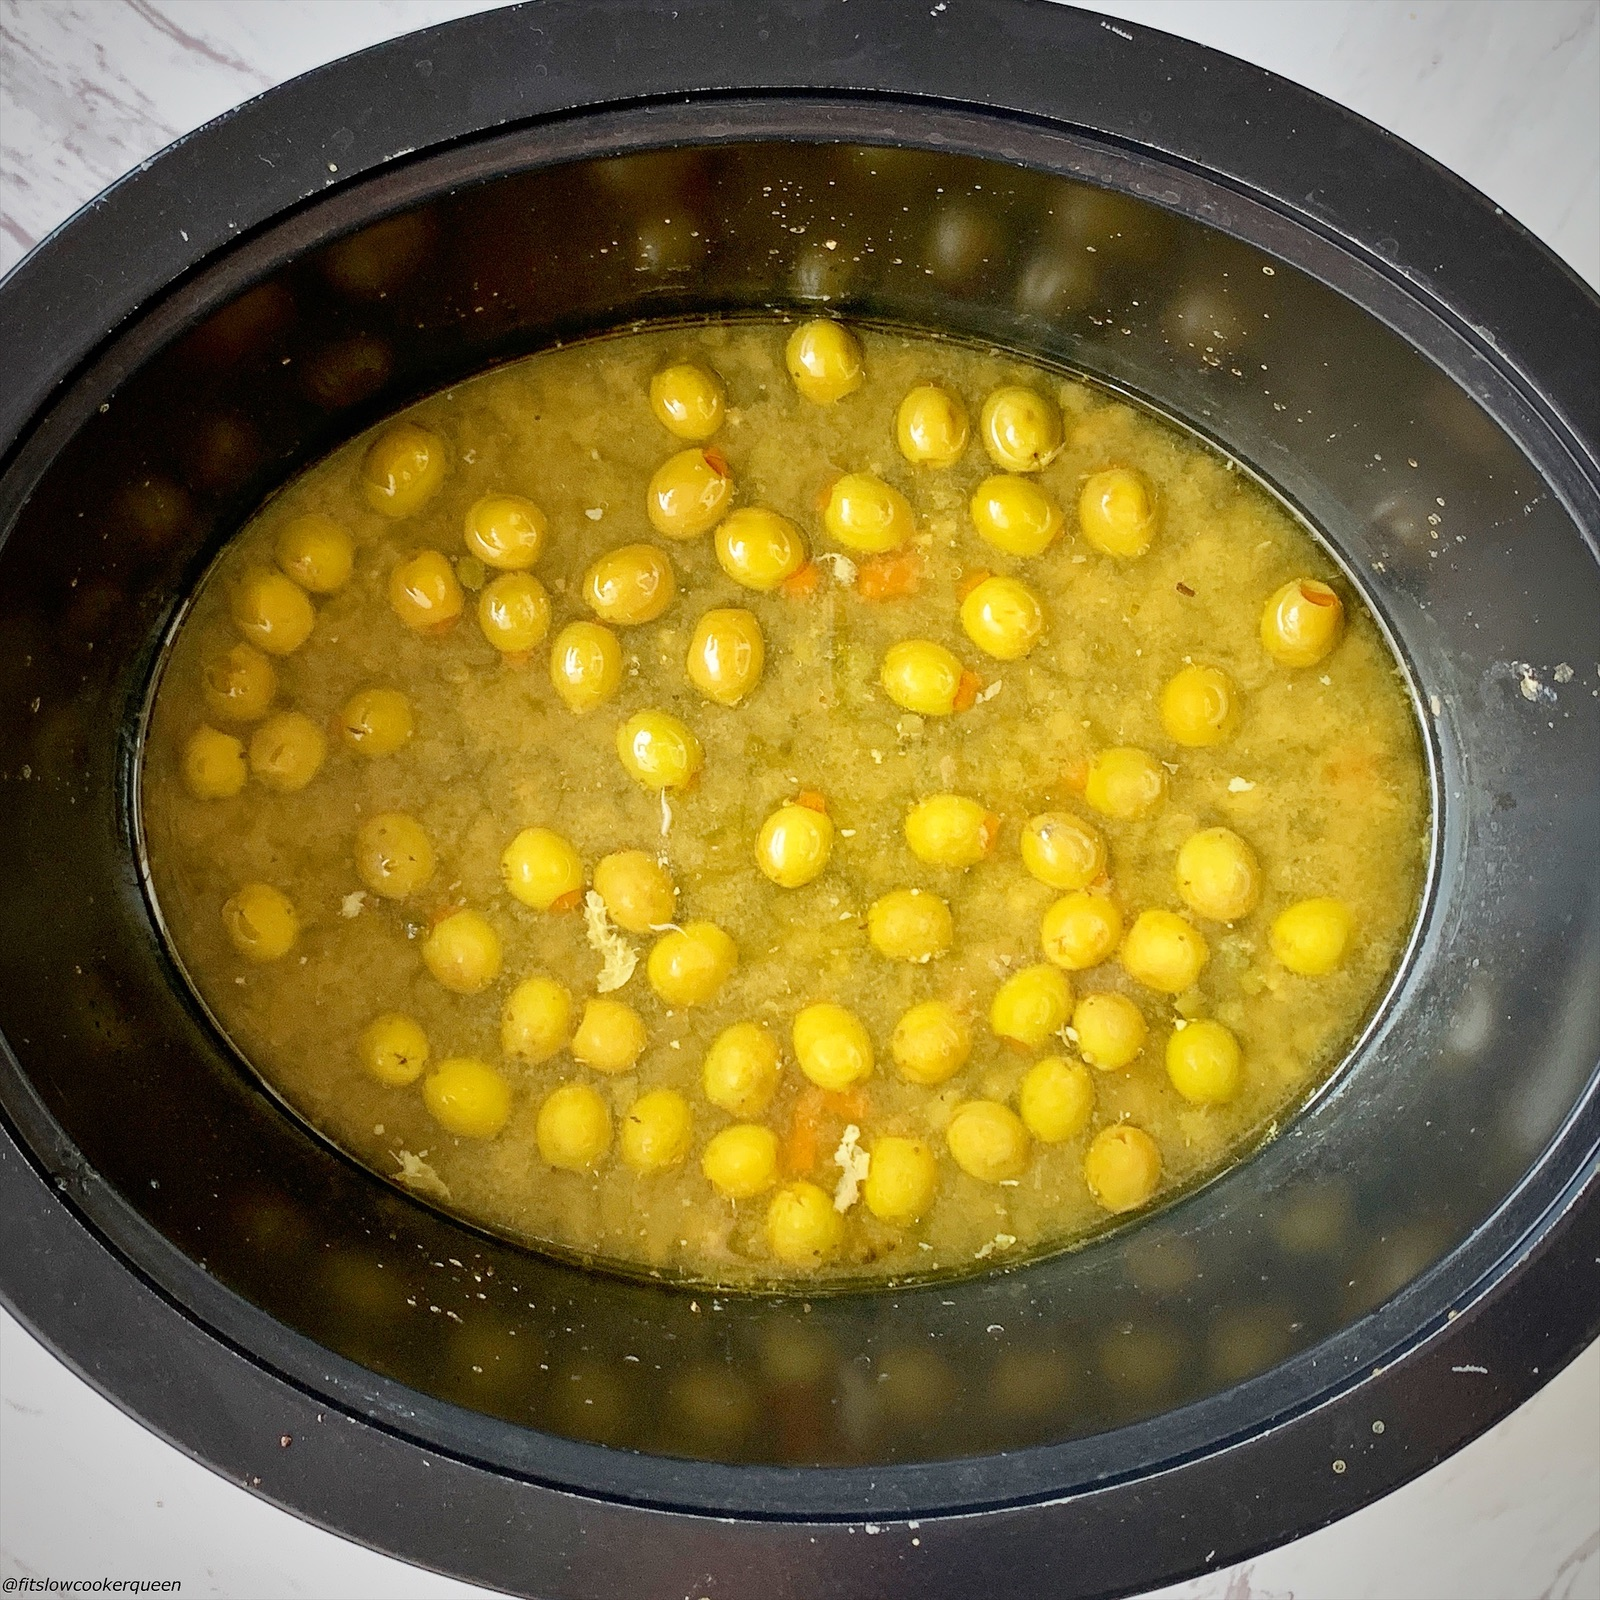 olives, capers and sauce in the slow cooker with chicken removed